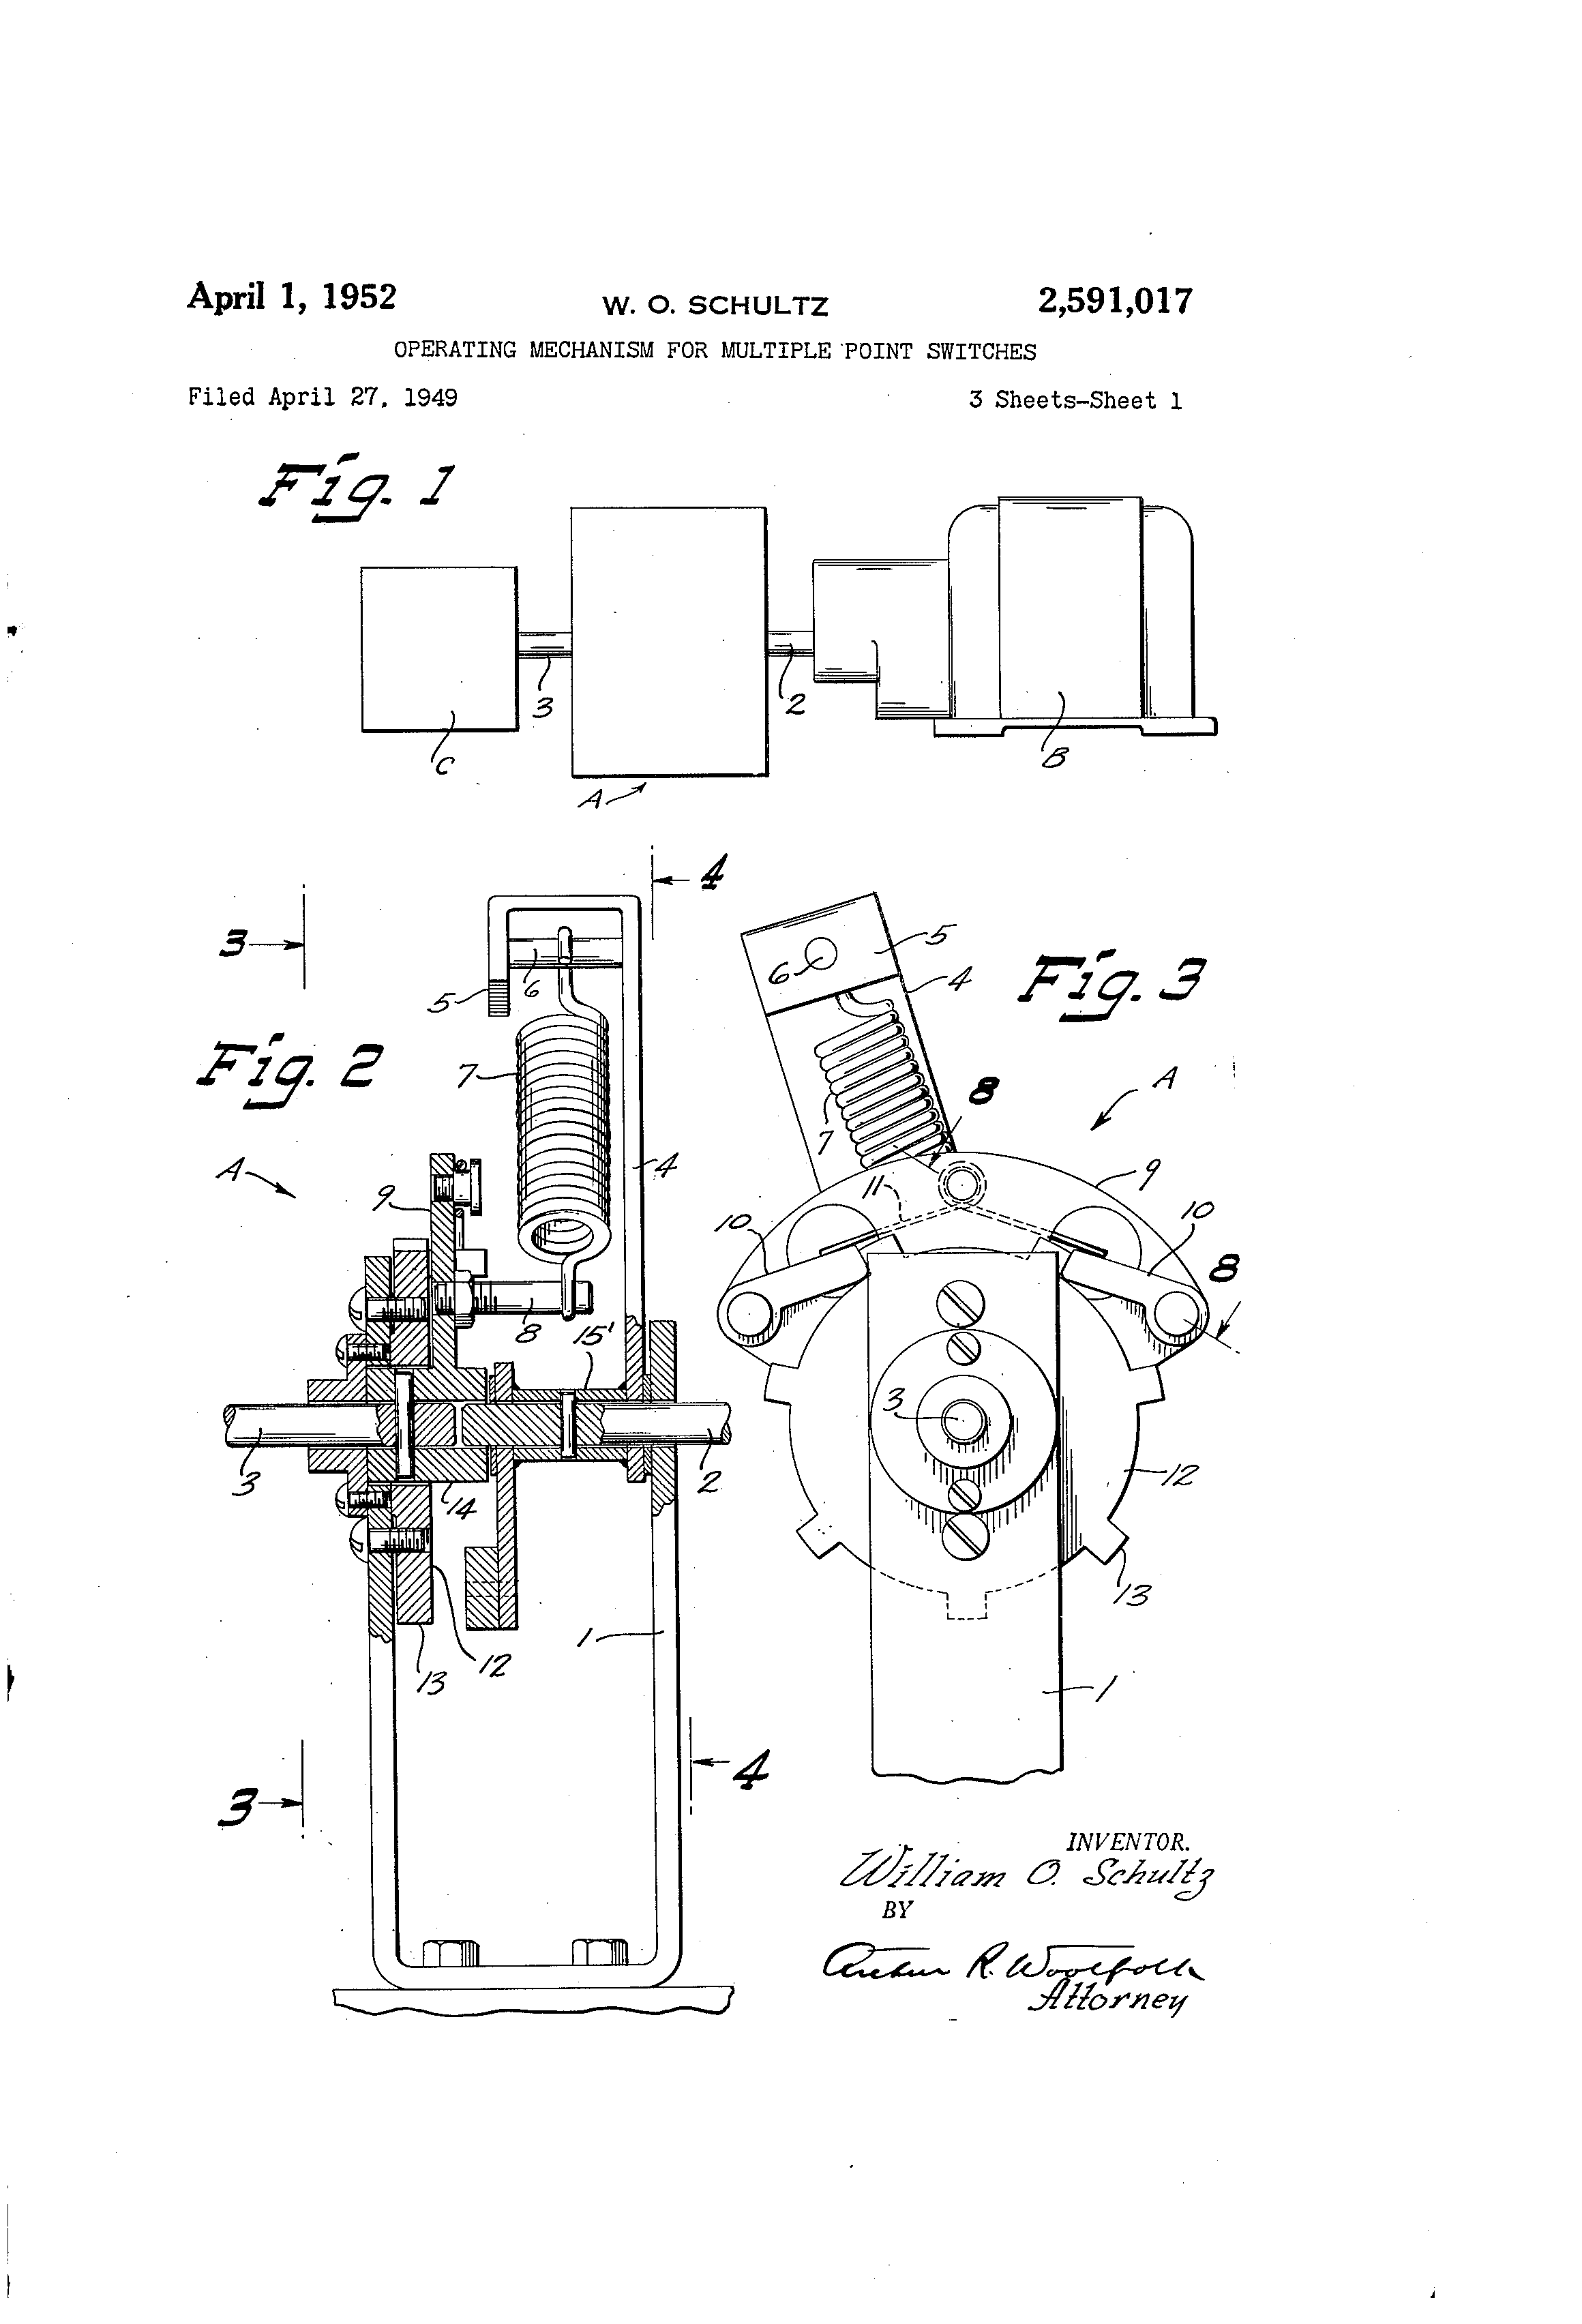 patent us2591017 - operating mechanism for multiple point switches